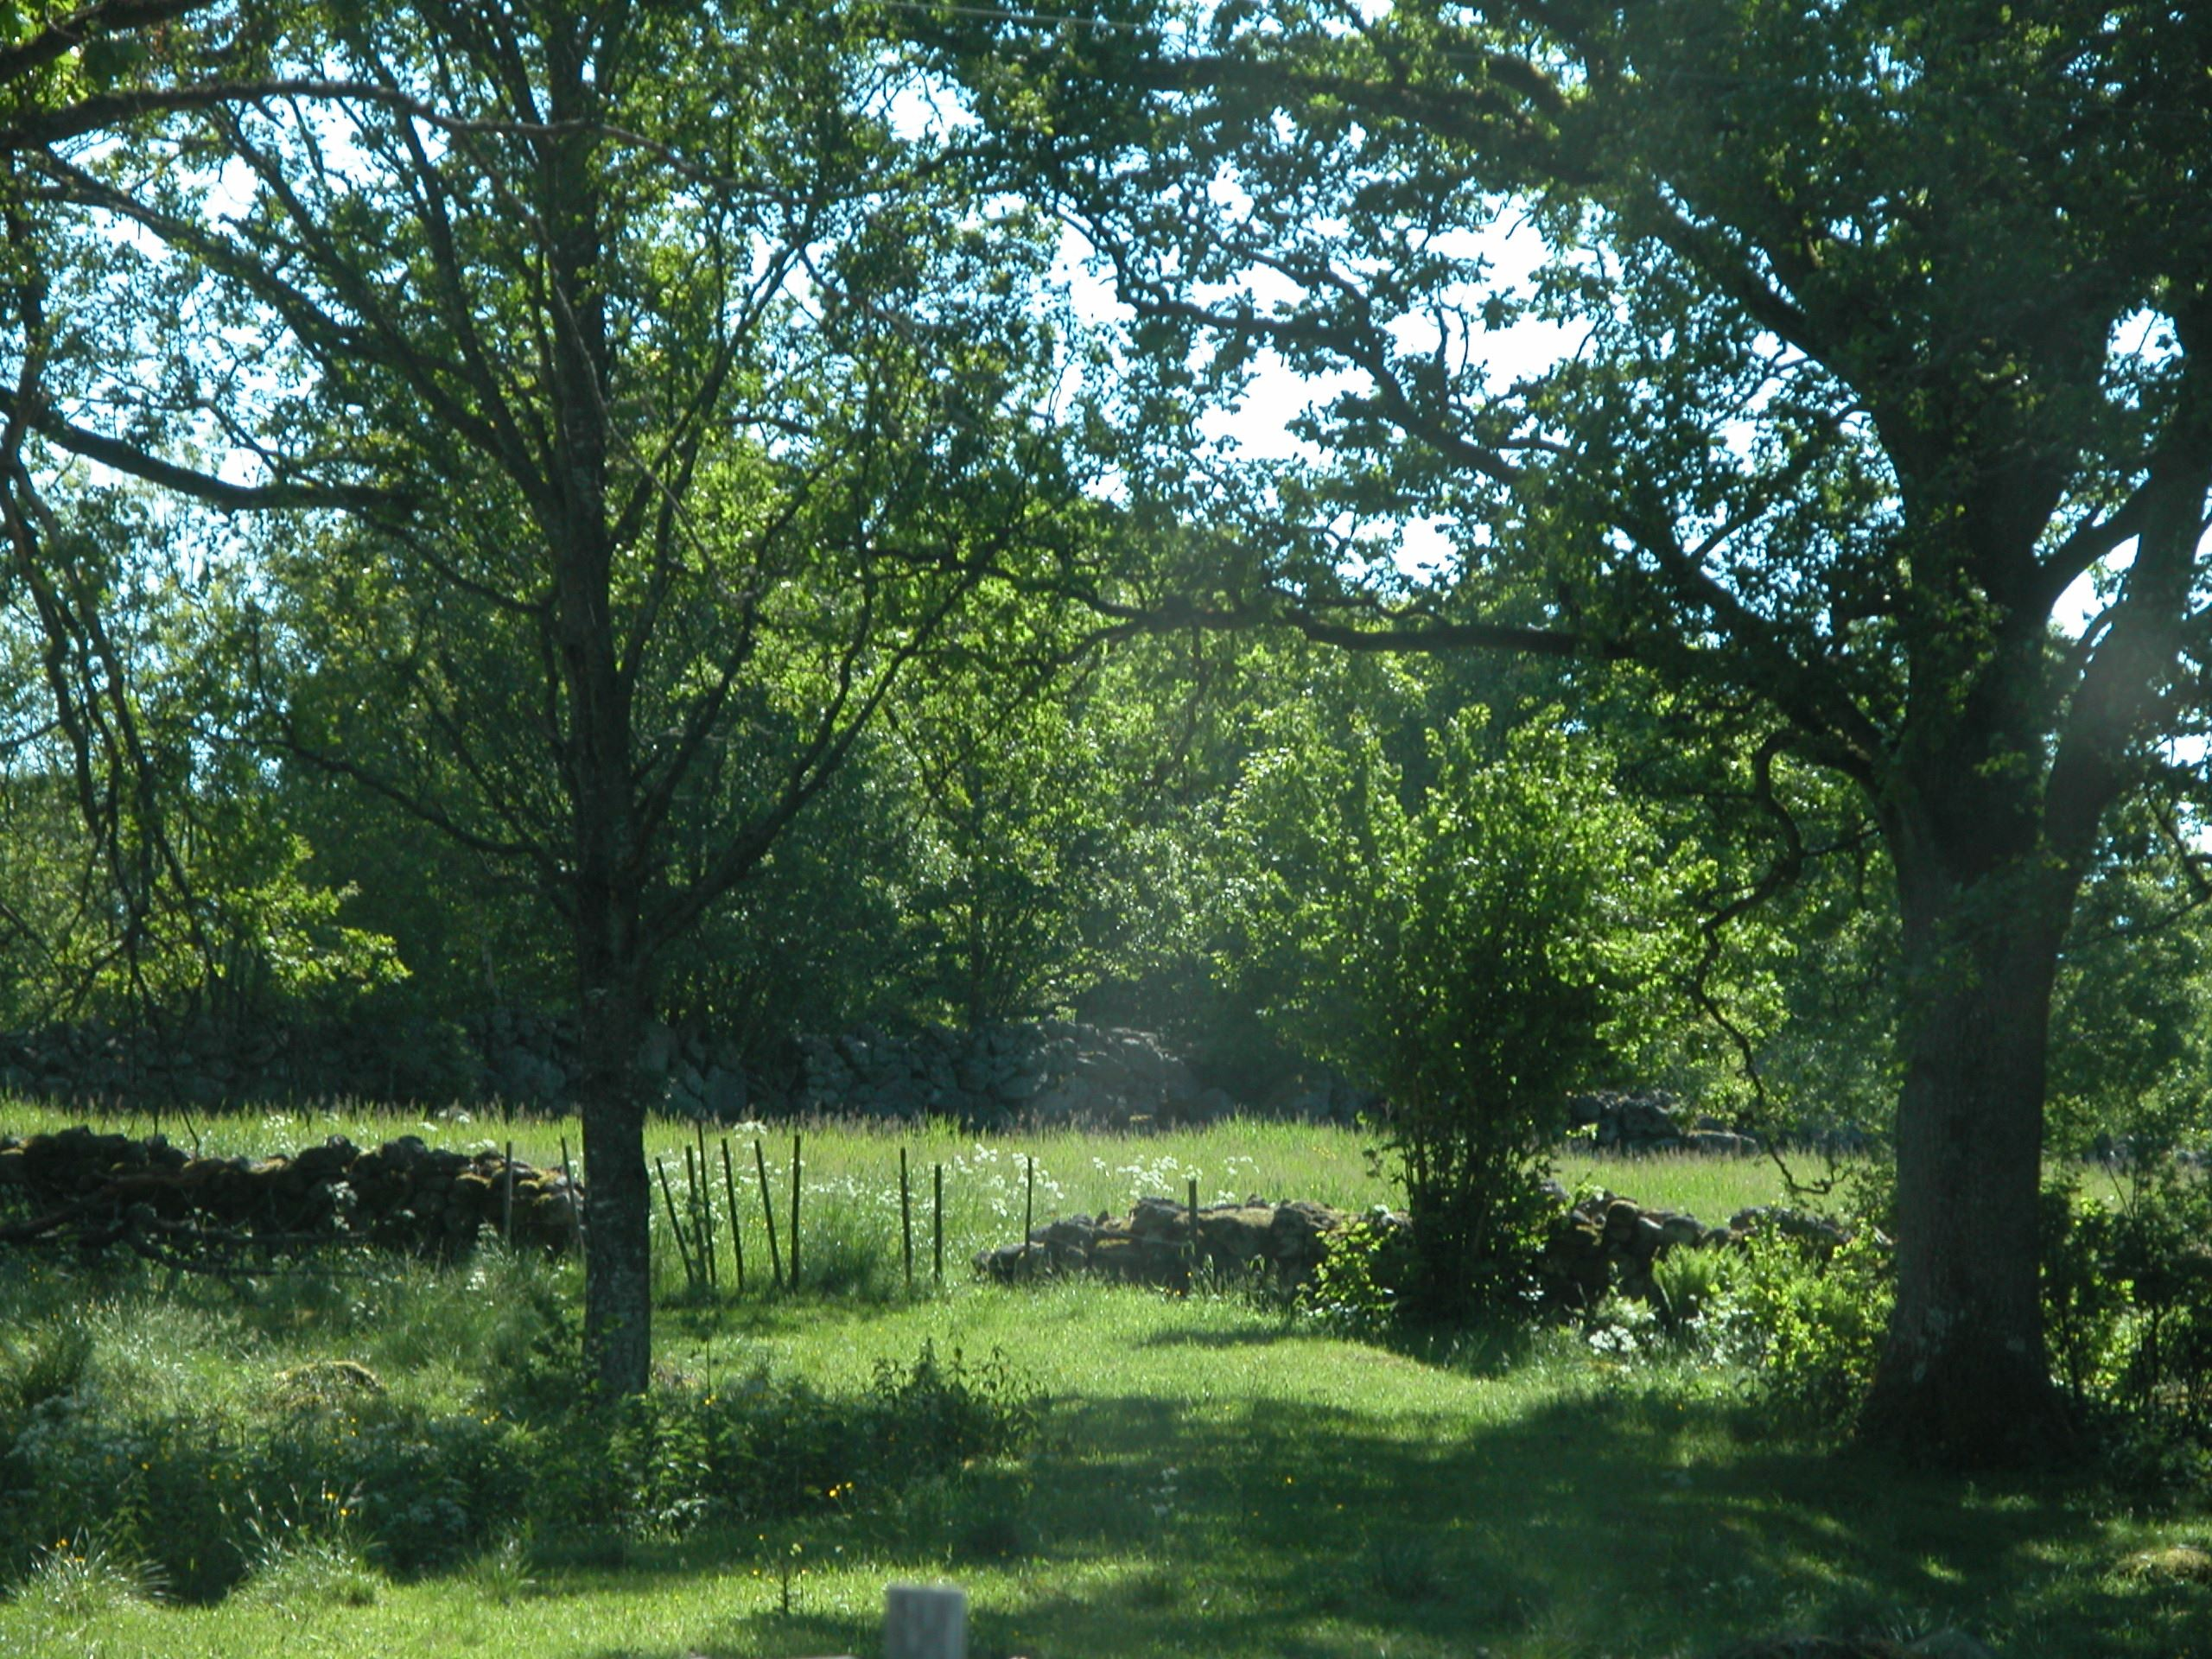 Walking-trail – On yesterday's paths